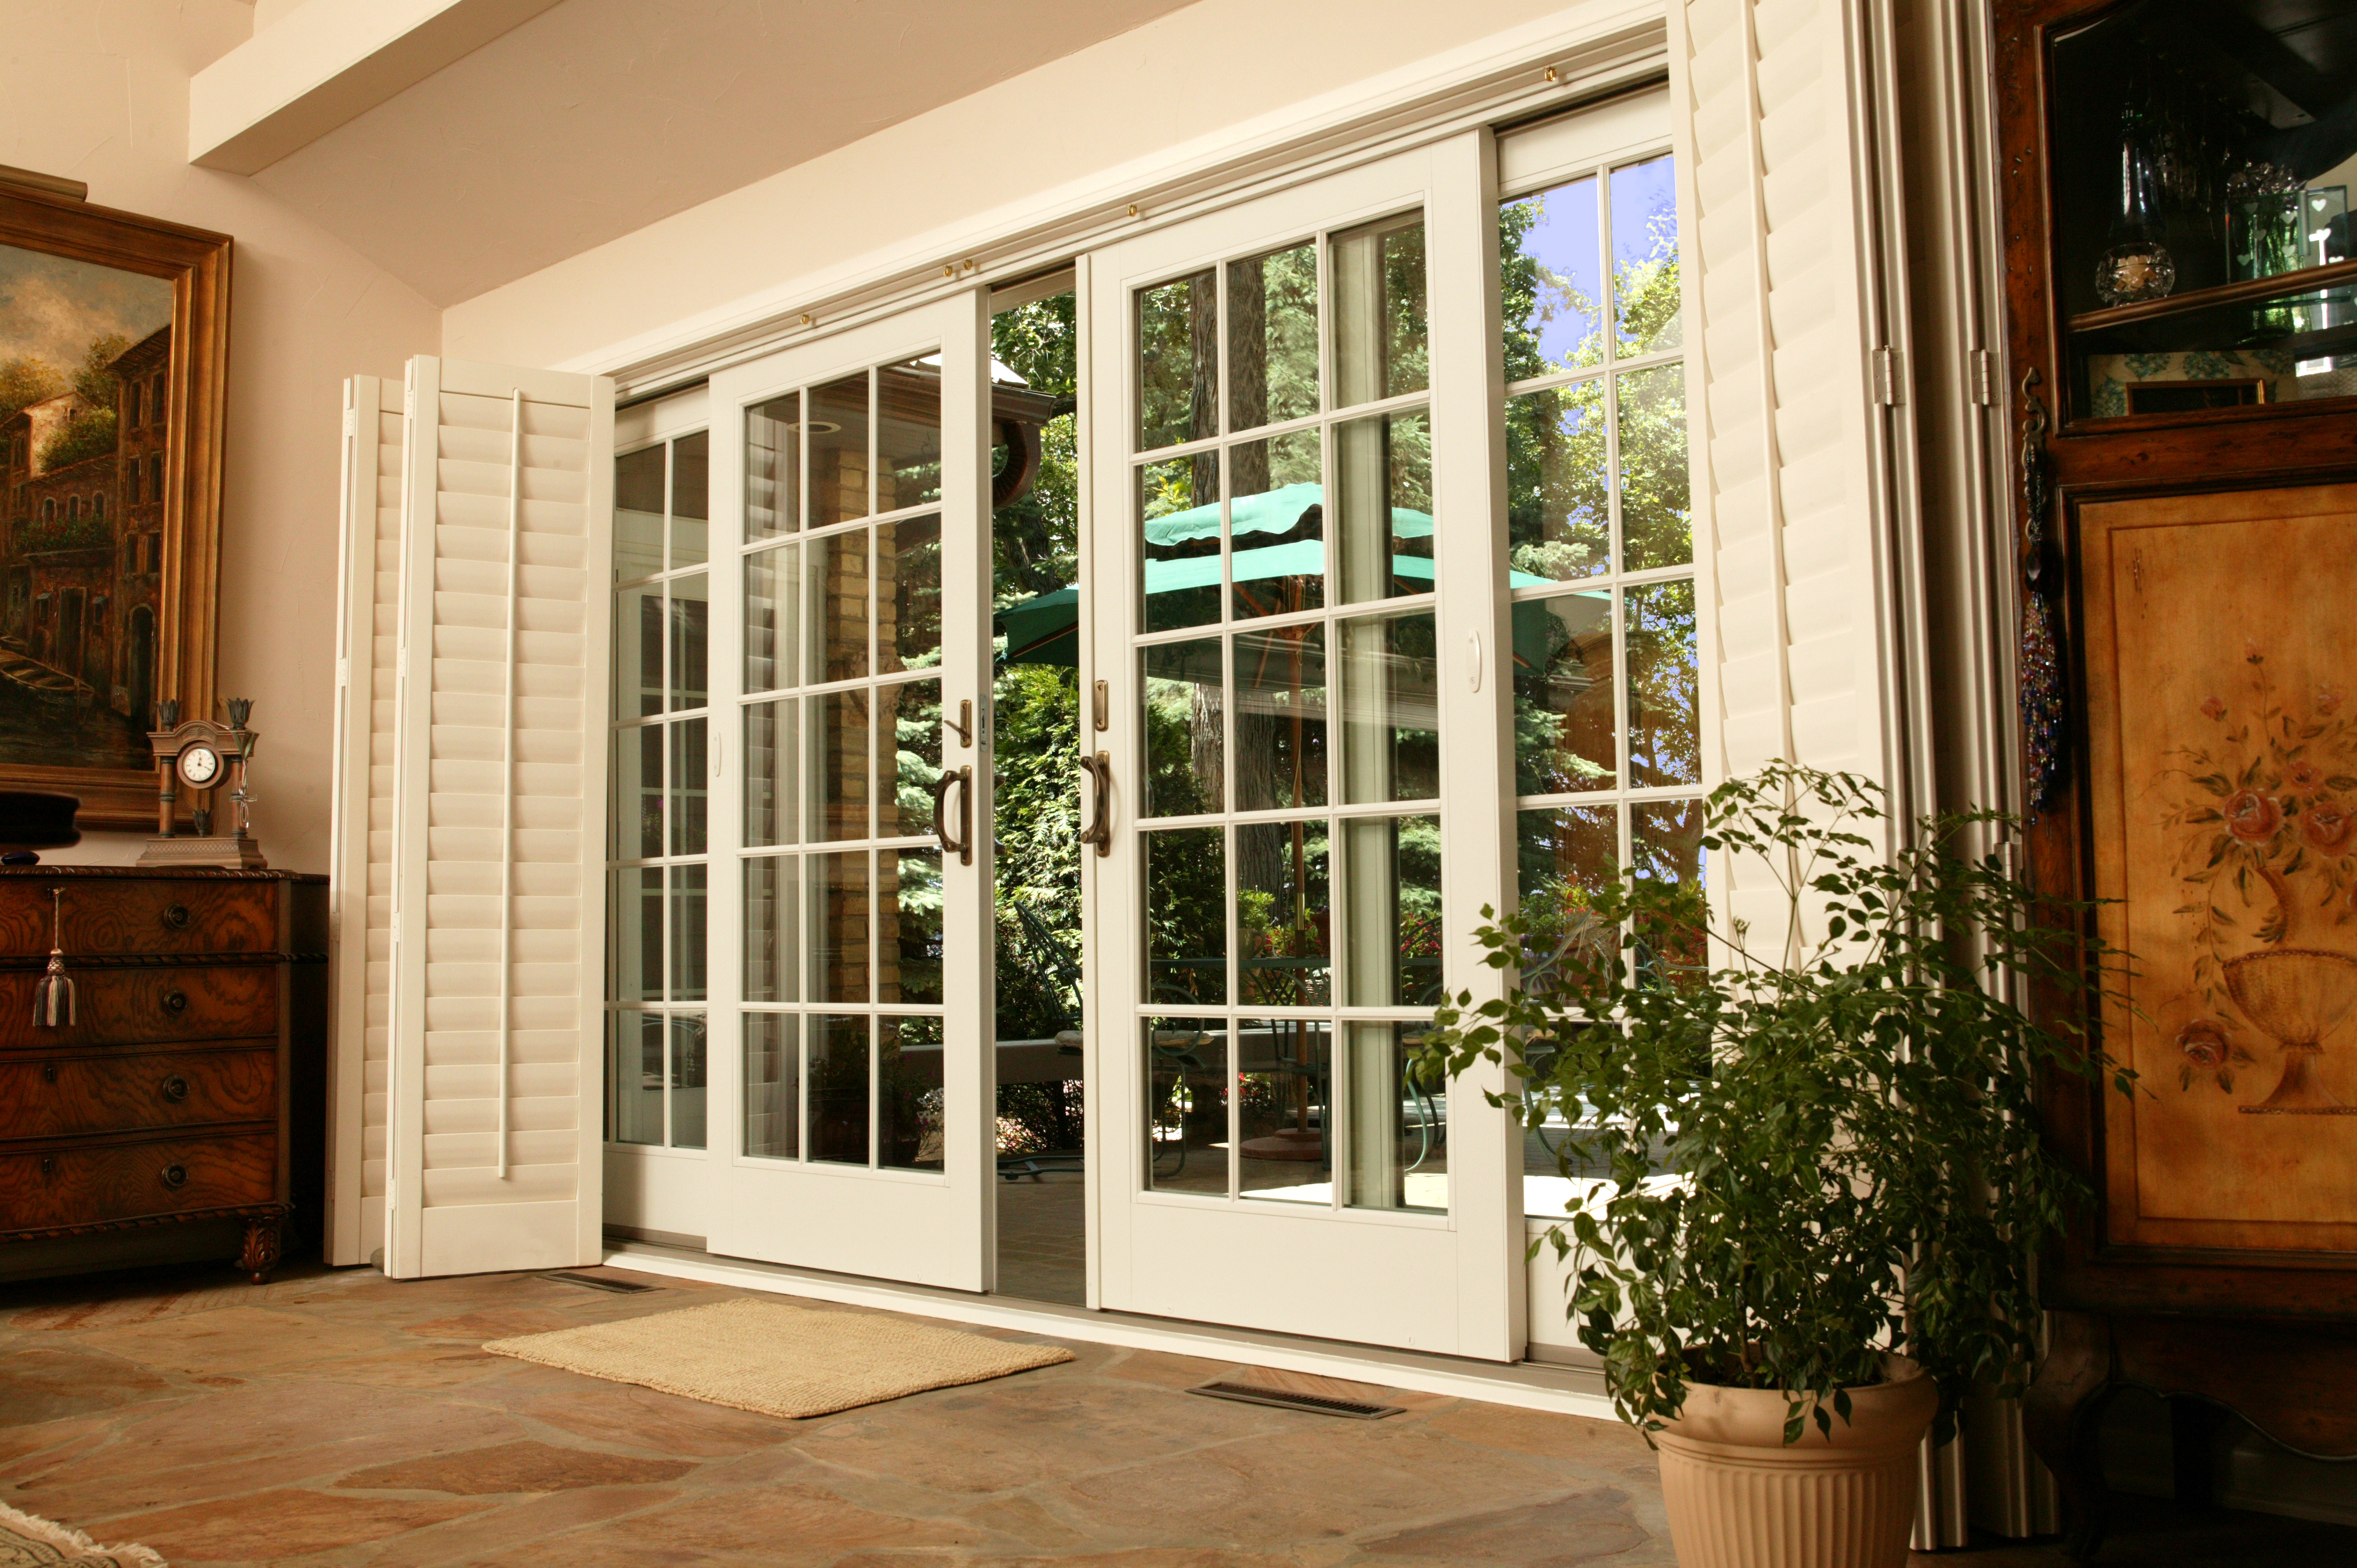 french doors exterior anderson photo - 5